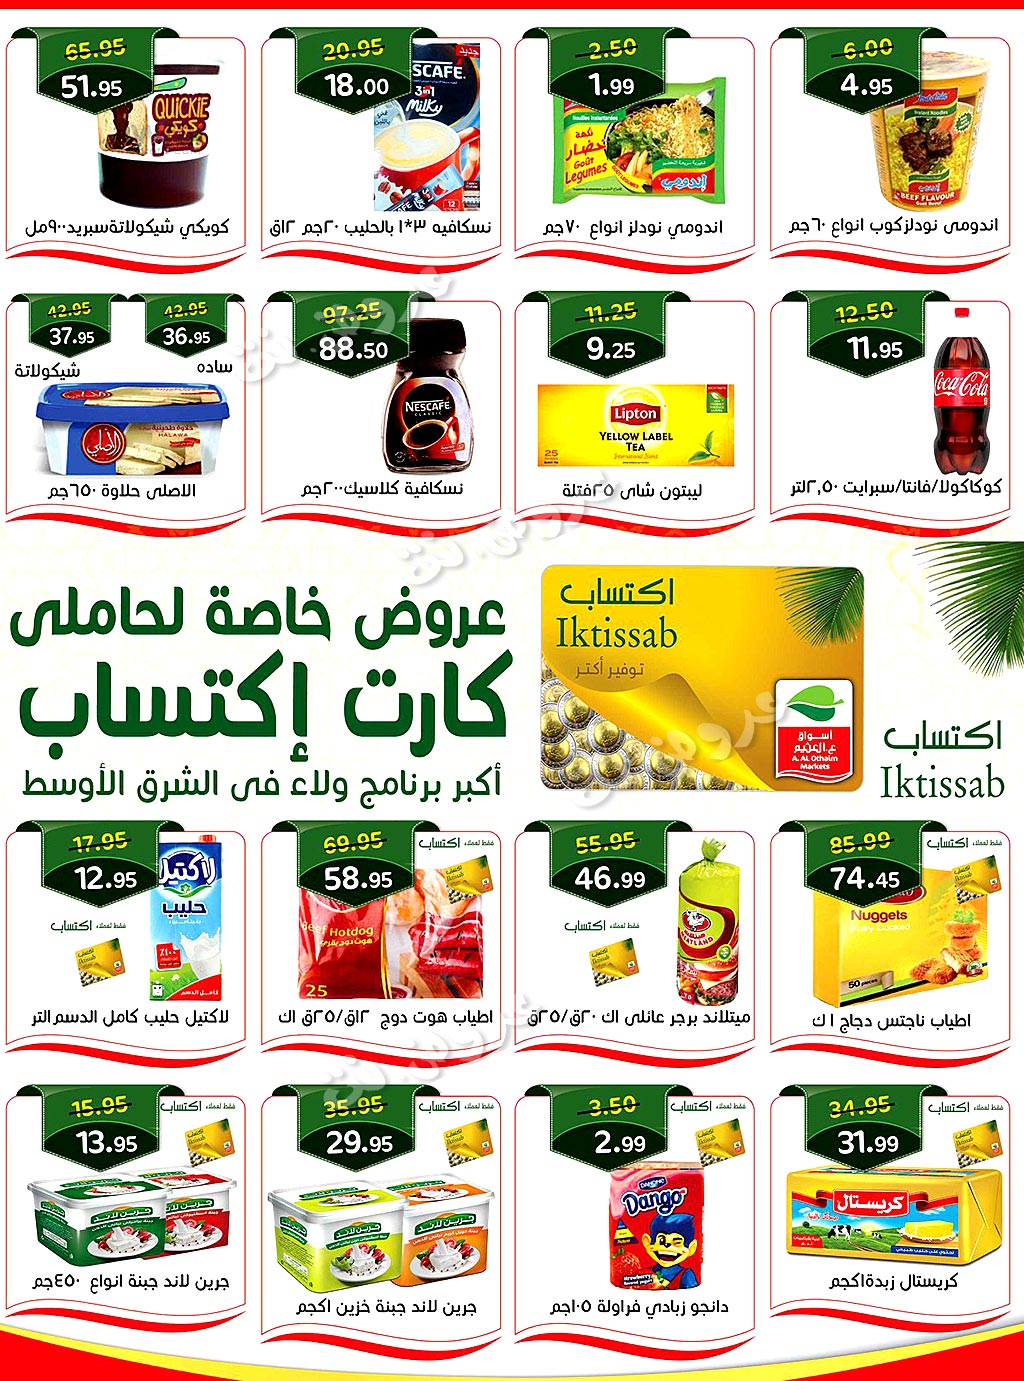 othaim offers from 16aug to 31aug 2019 page number 2 عروض العثيم من 16 أغسطس حتى 31 أغسطس 2019 صفحة رقم 2